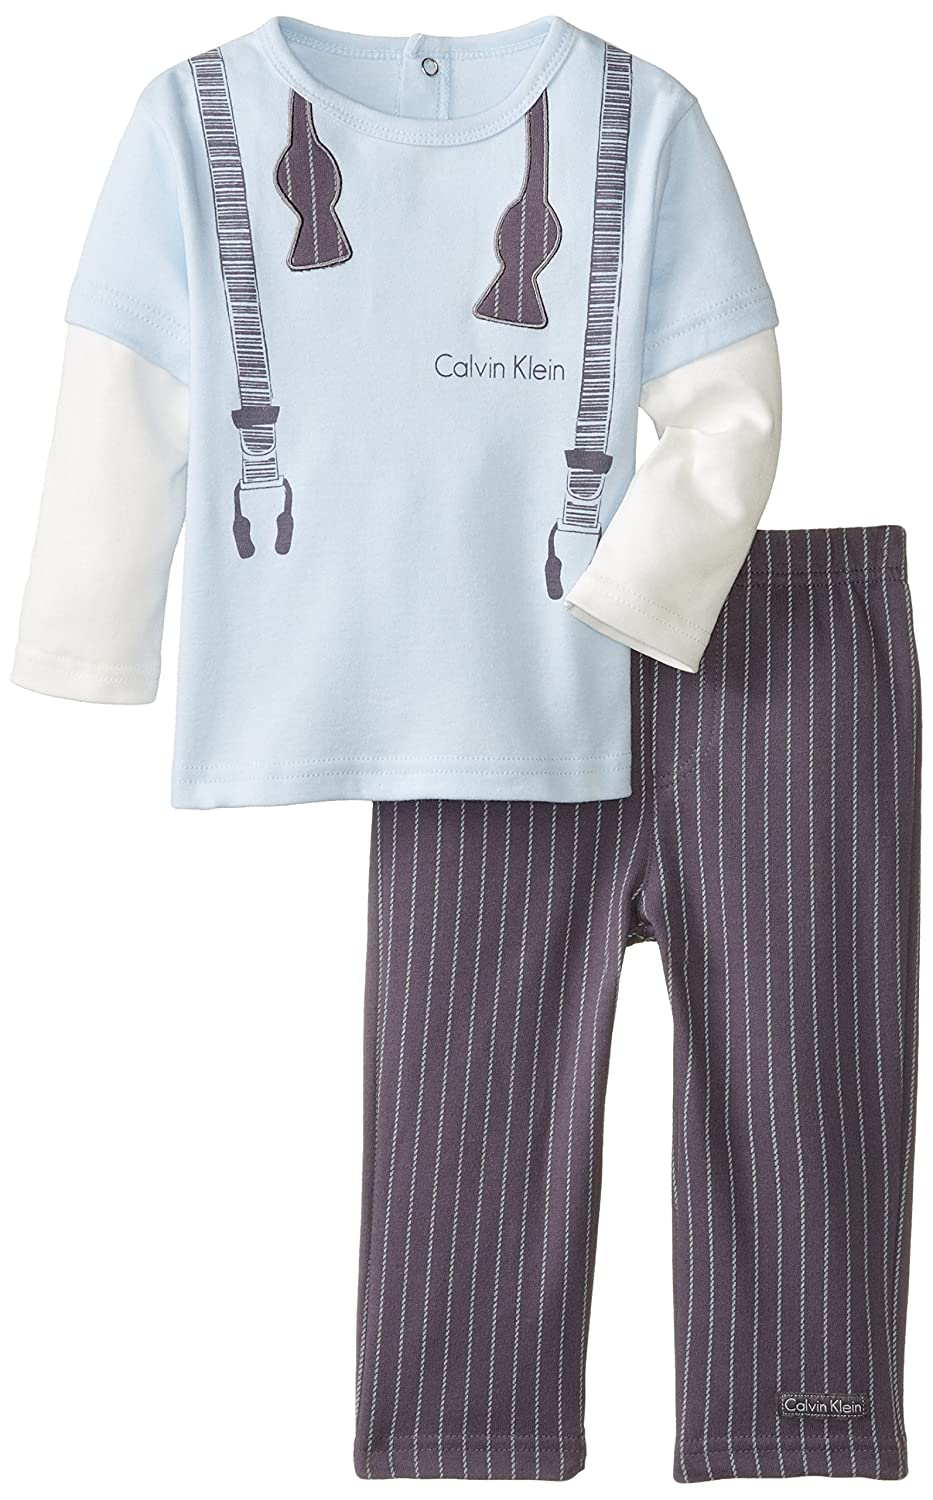 Calvin Klein Baby Boys' Twofer Long Sleeve Tee with Pull On Pants пижама evans evans ev006ewscq22